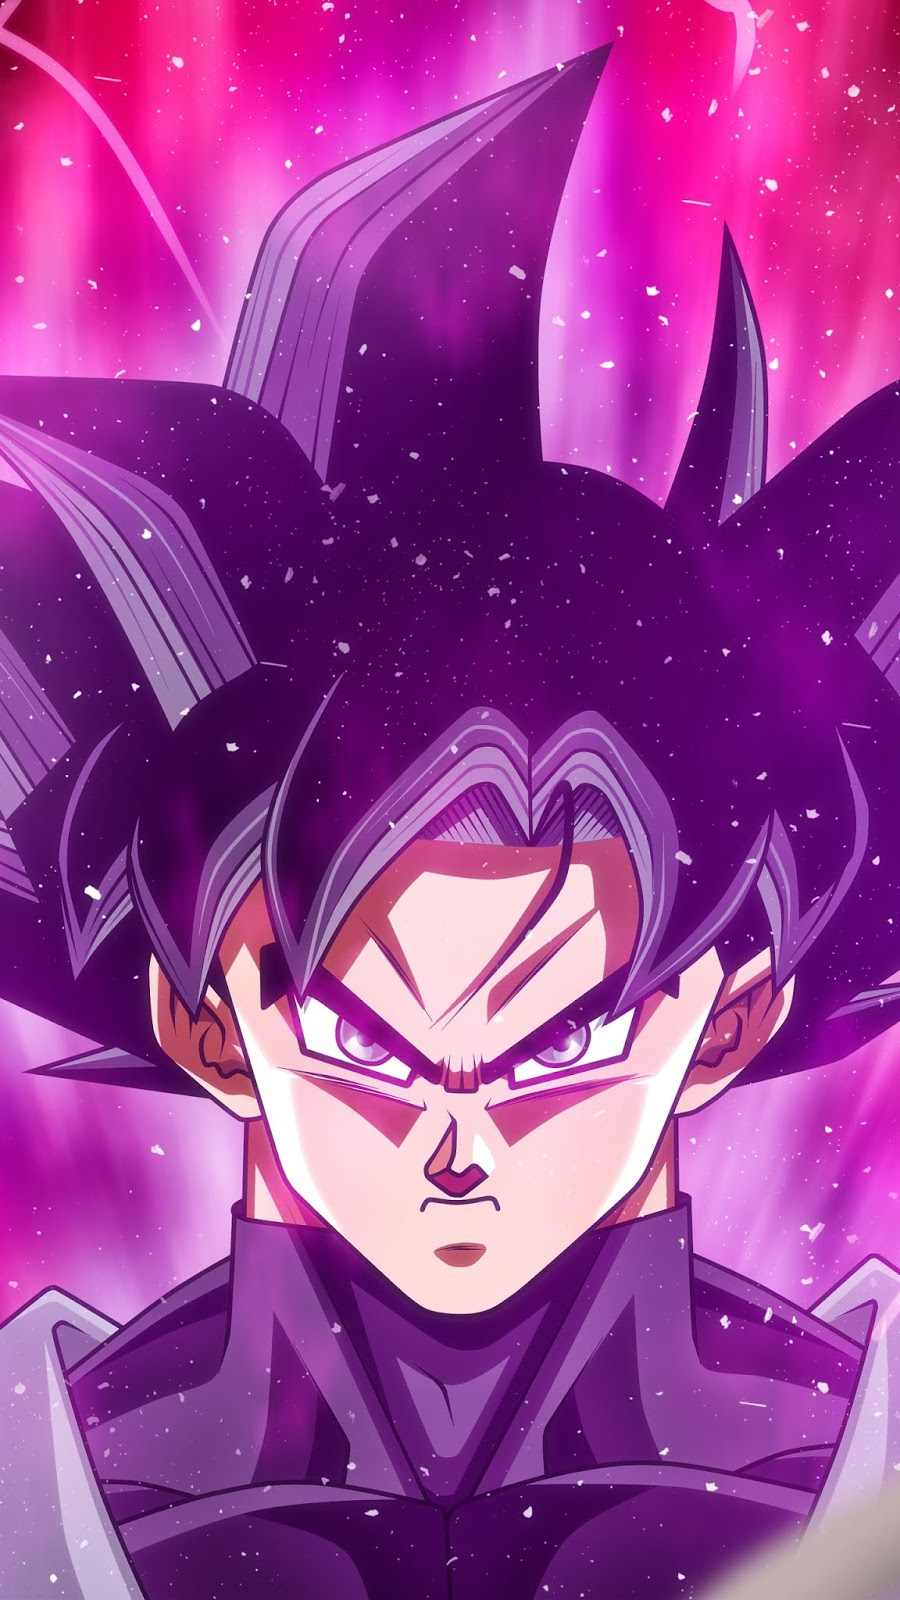 Wallpapers 4k para Celular: Dragon Ball